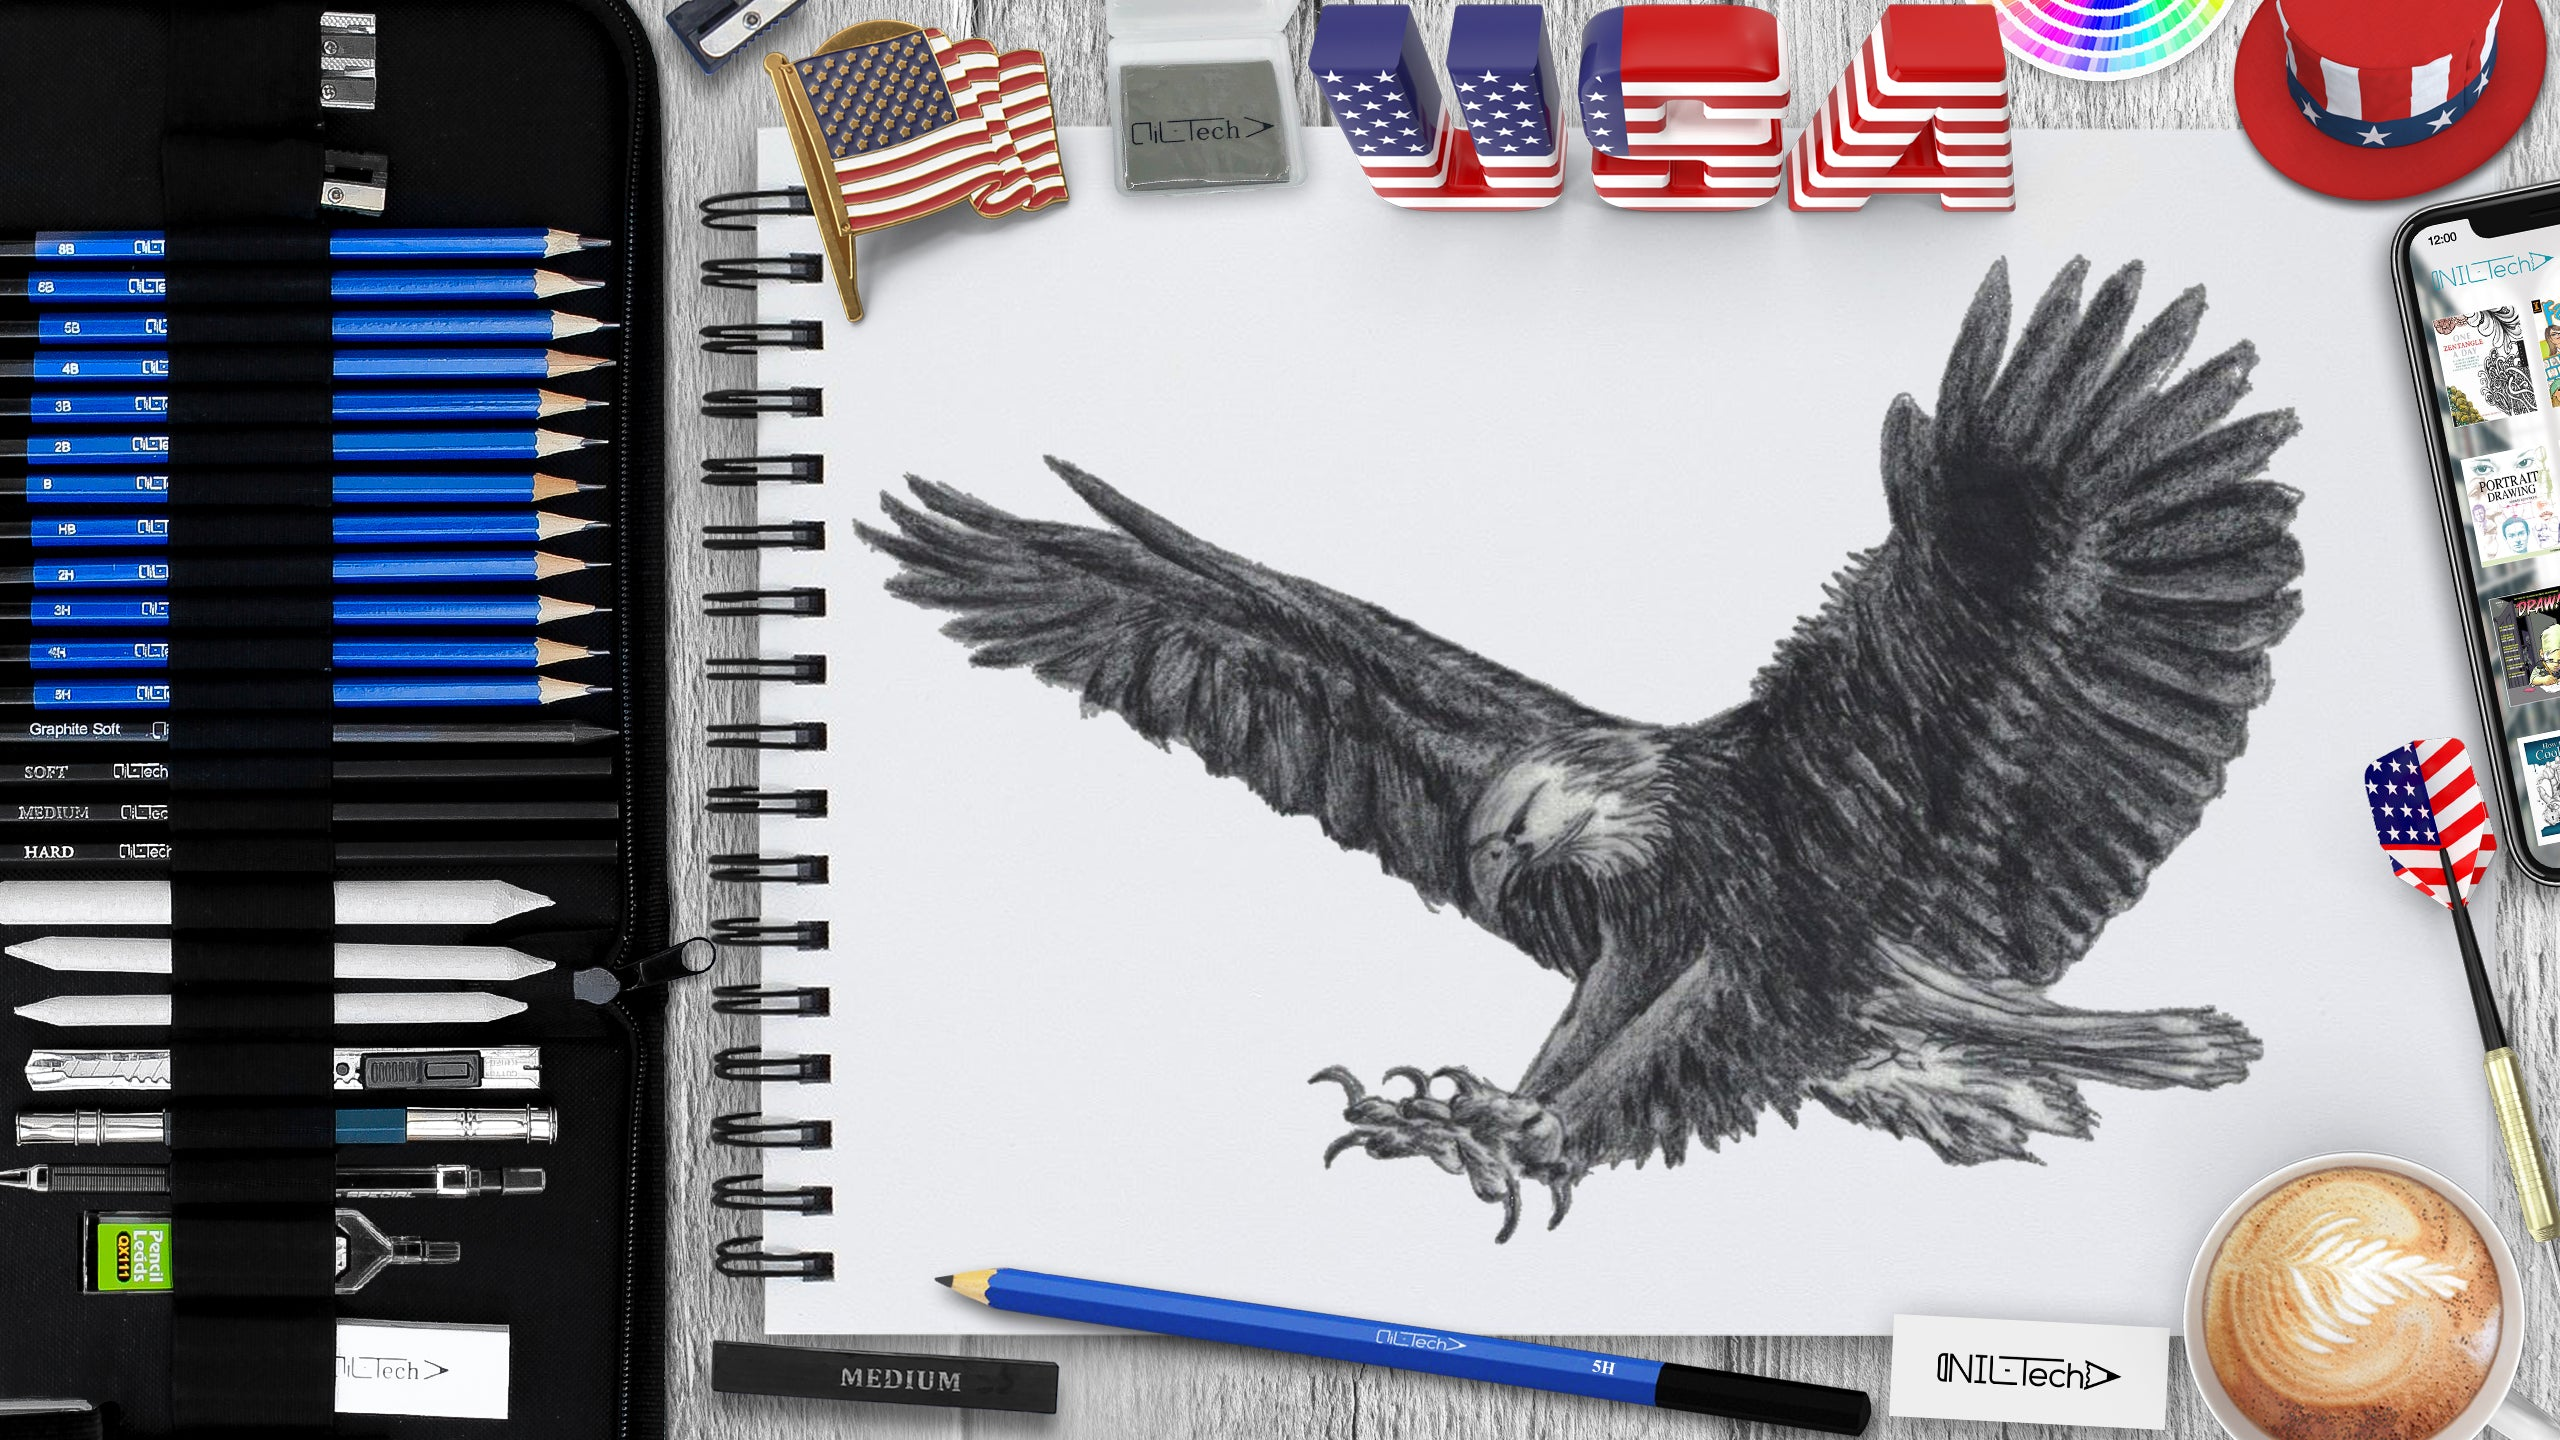 How to draw a bird, Bald eagle